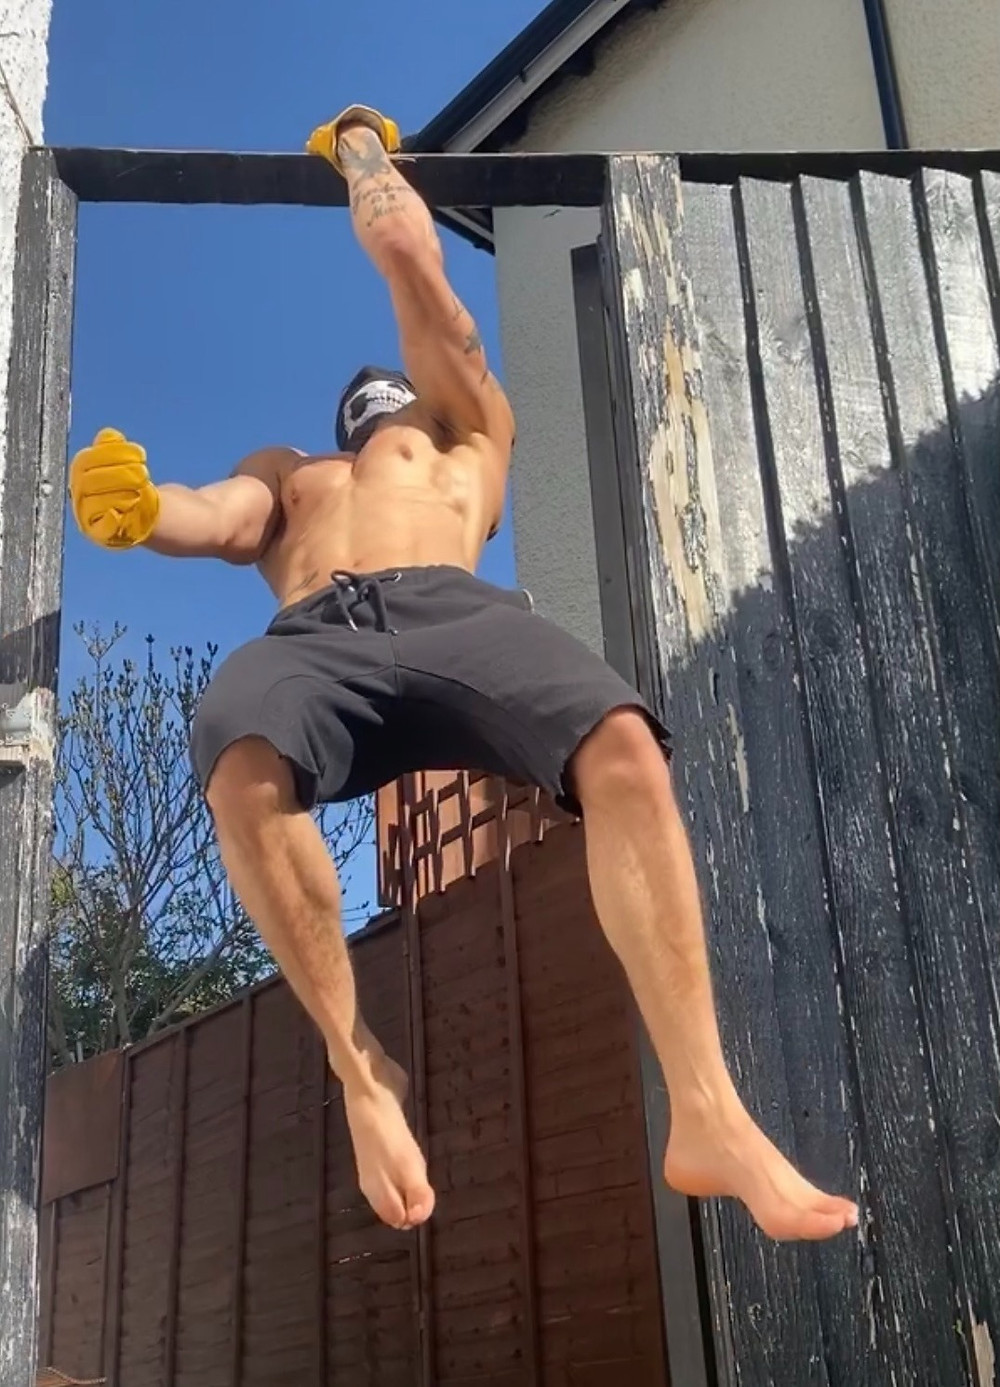 Ronin Supplies owner doing pull ups